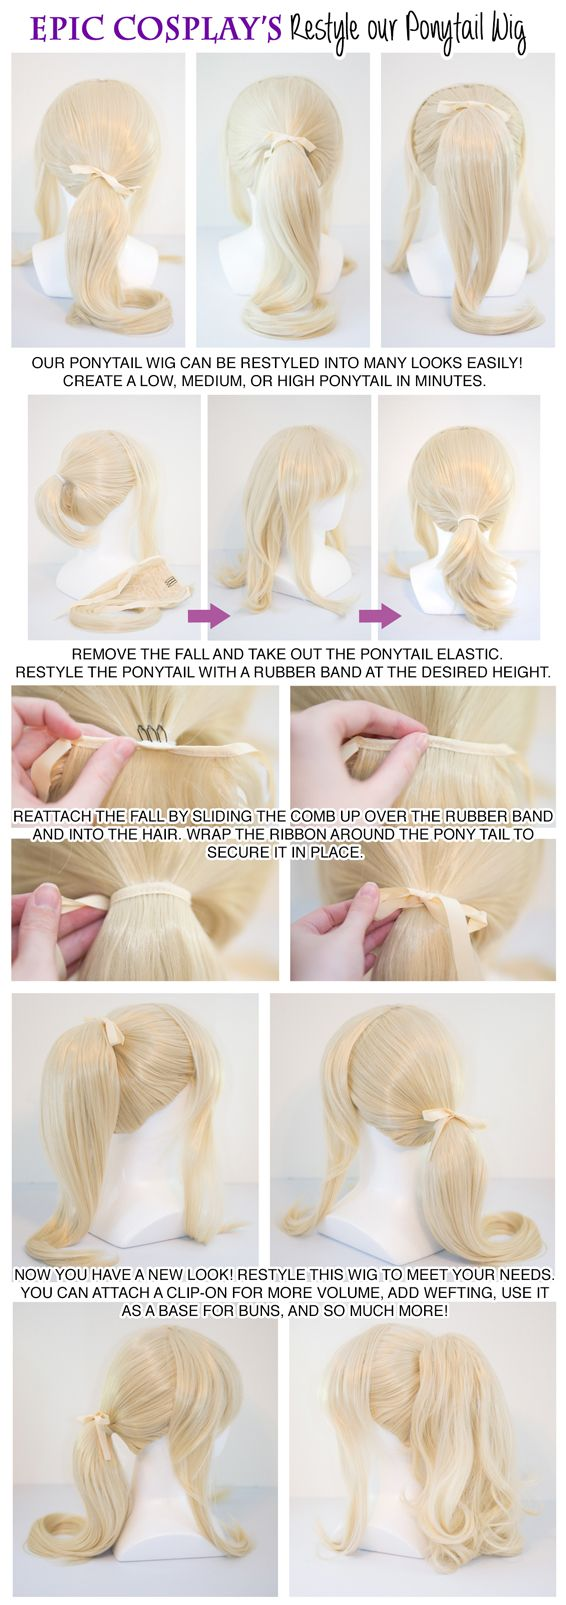 Ponytail tutorial - I really like the look of their wigs, I may have to get this to compare to my Arda